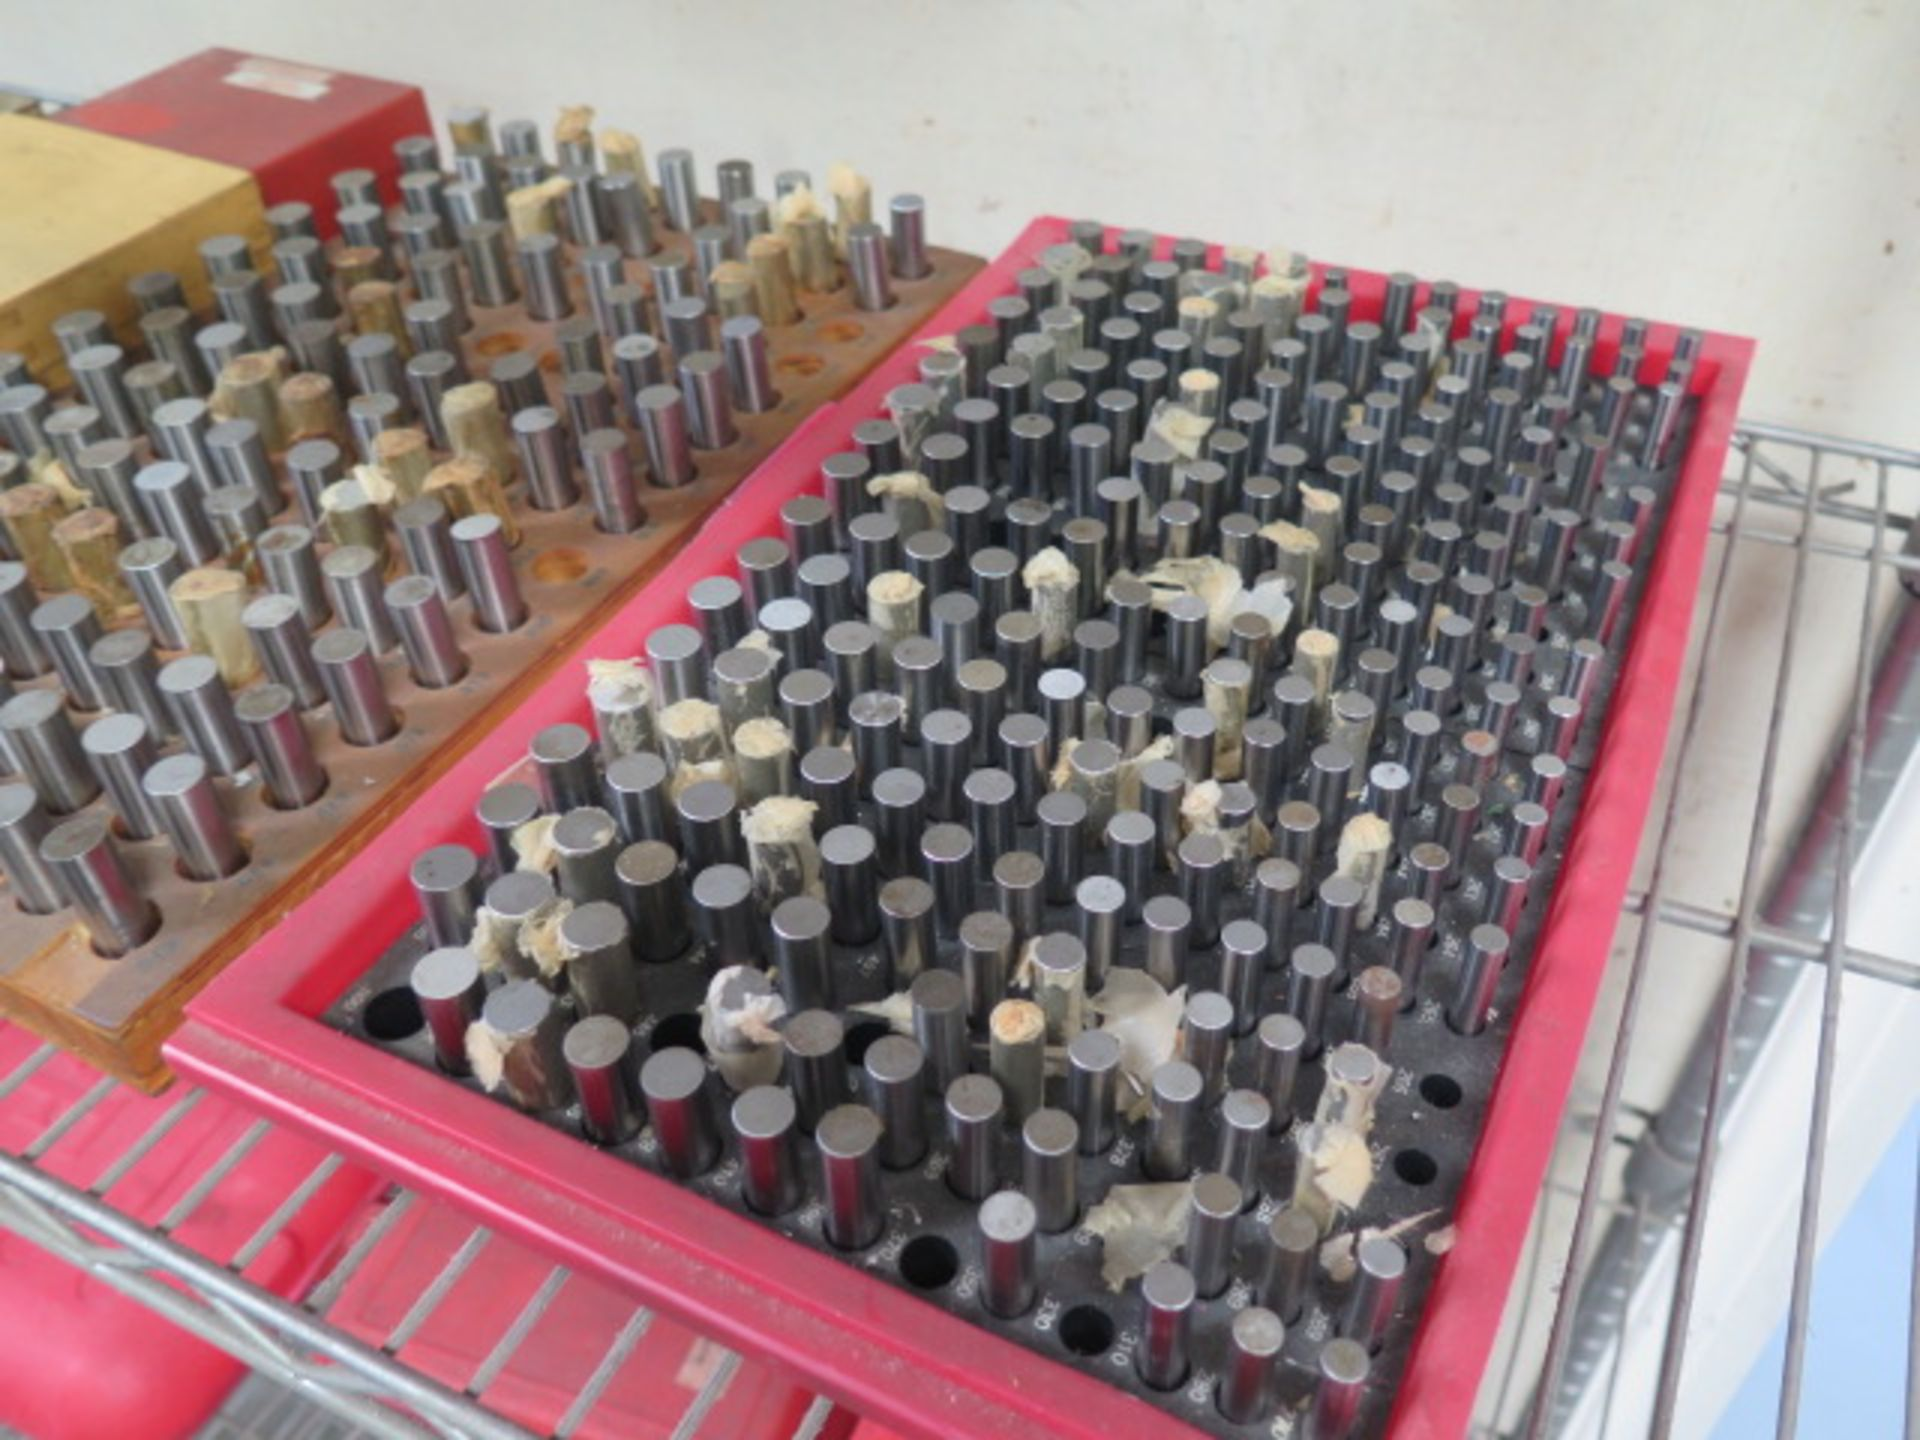 Pin Gage Sets (SOLD AS-IS - NO WARRANTY) - Image 2 of 12